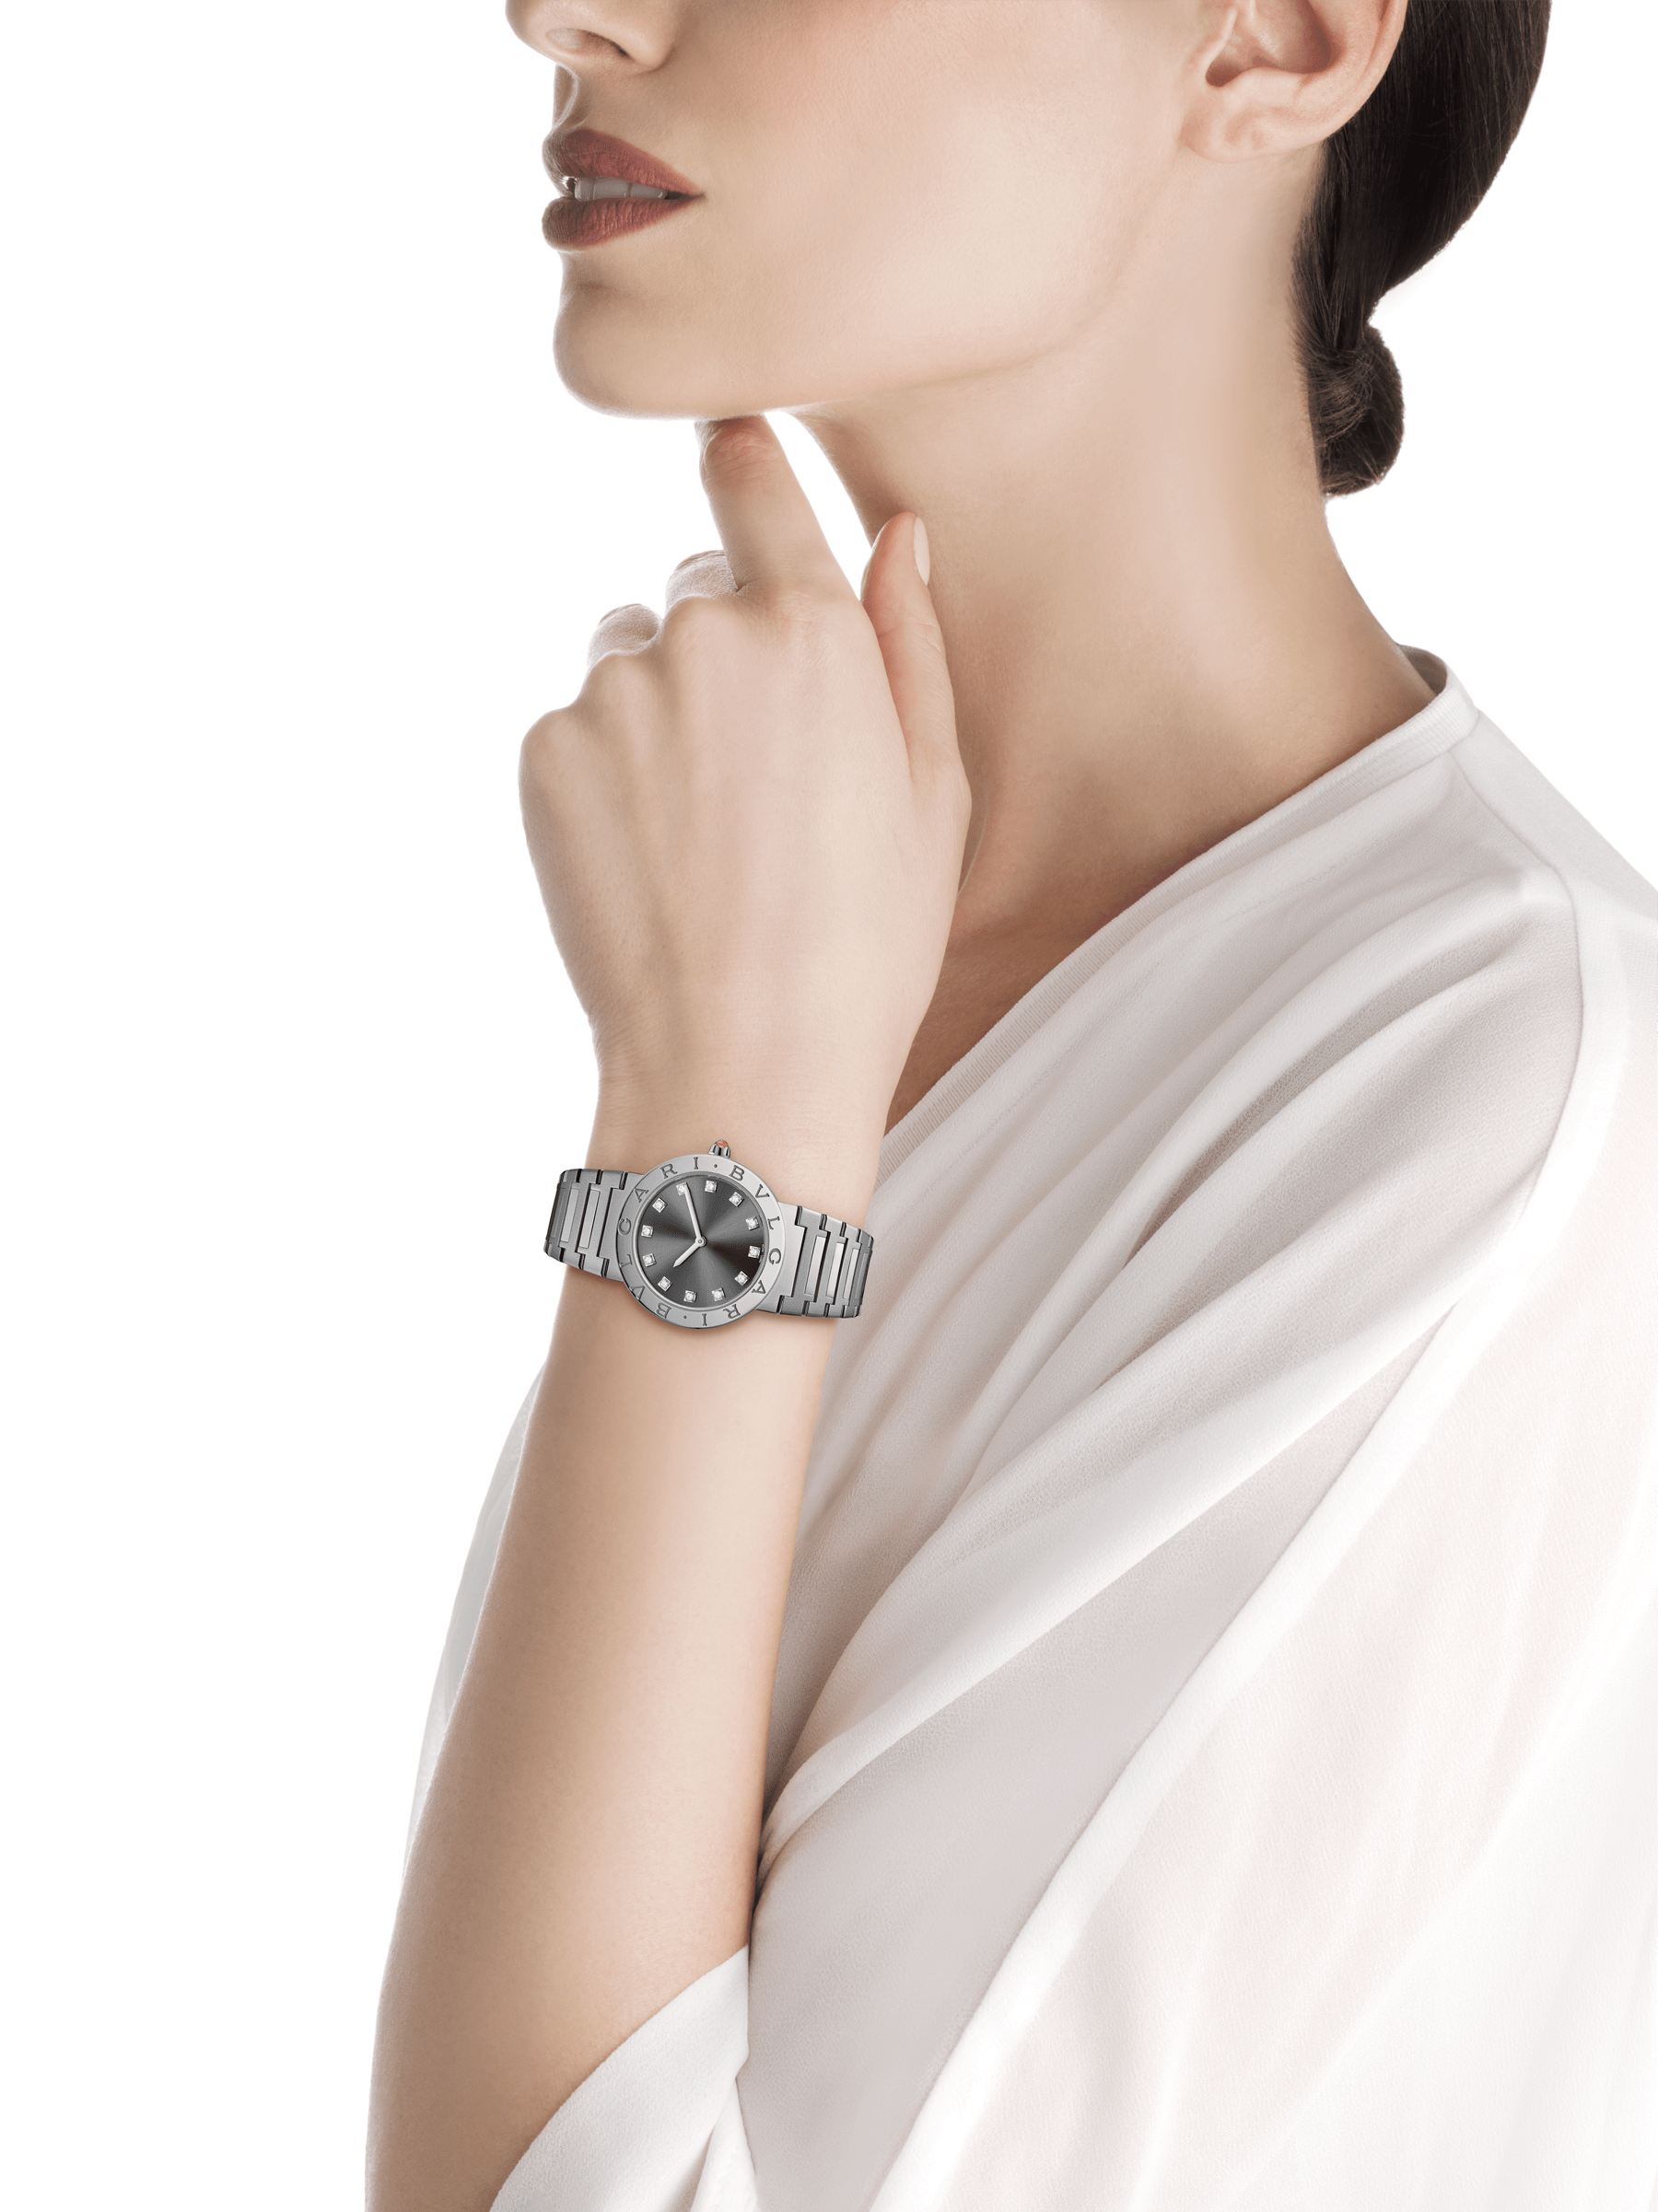 BVLGARI BVLGARI LADY watch in stainless steel case and bracelet, stainless steel bezel engraved with double logo, anthracite satiné soleil lacquered dial and diamond indexes 102923 image 3